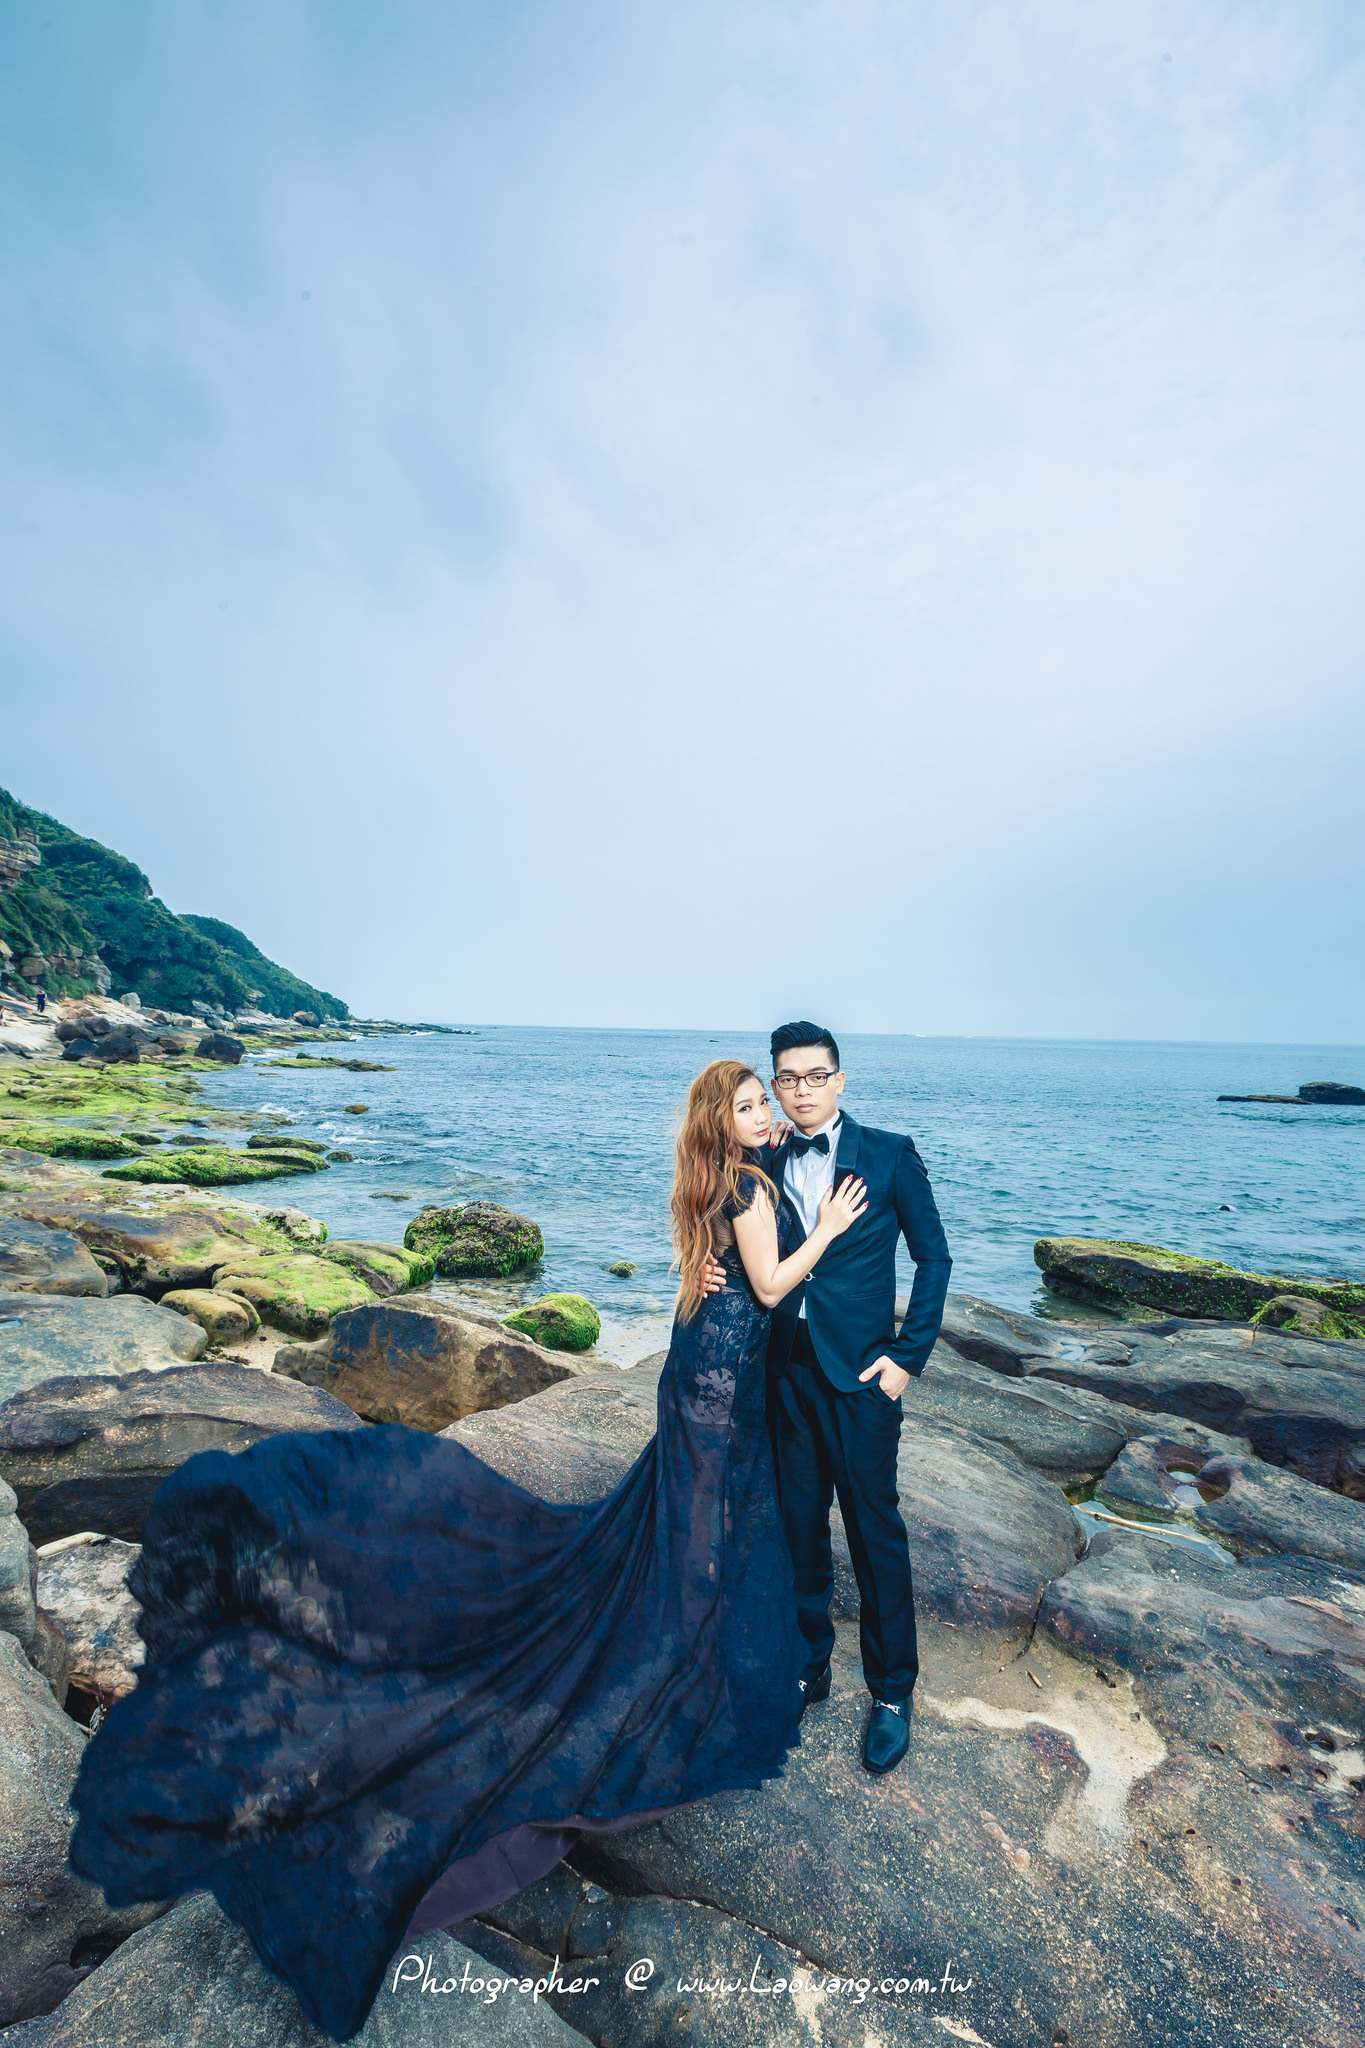 wedding photography6 The Best Wedding Photography Ideas by Lao Wang